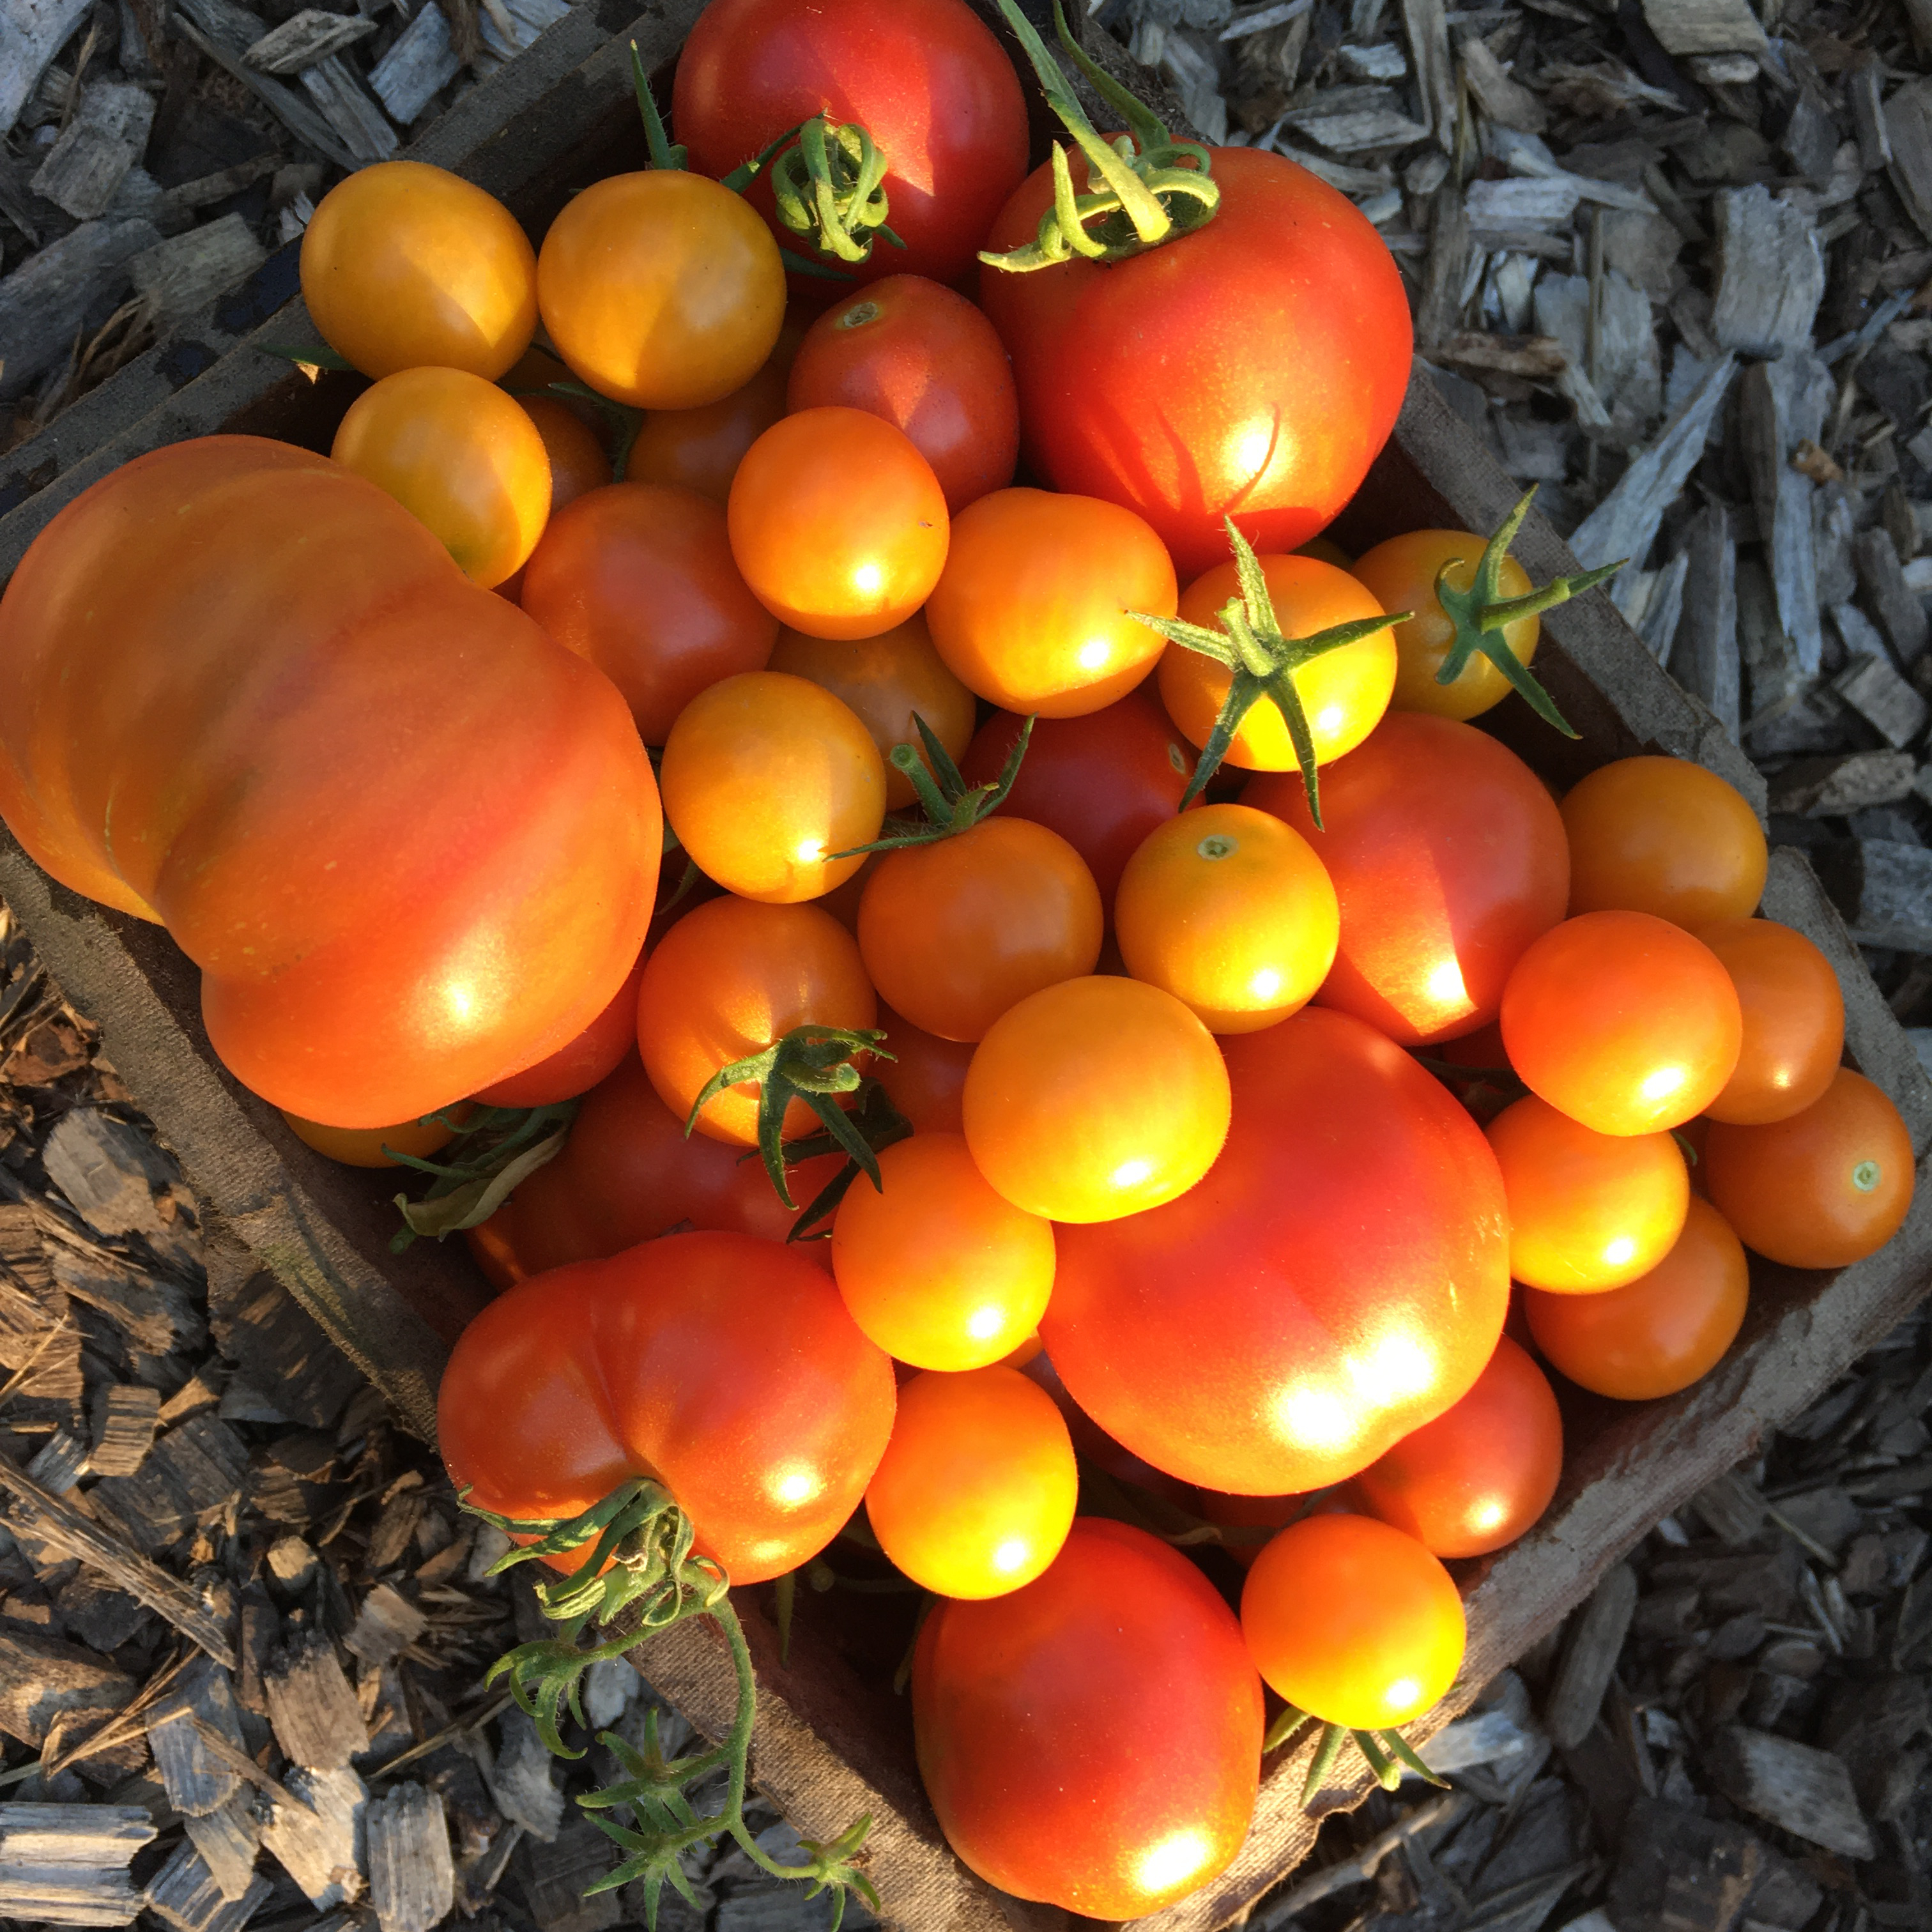 Caption: freshly harvested sungold cherry tomatoes